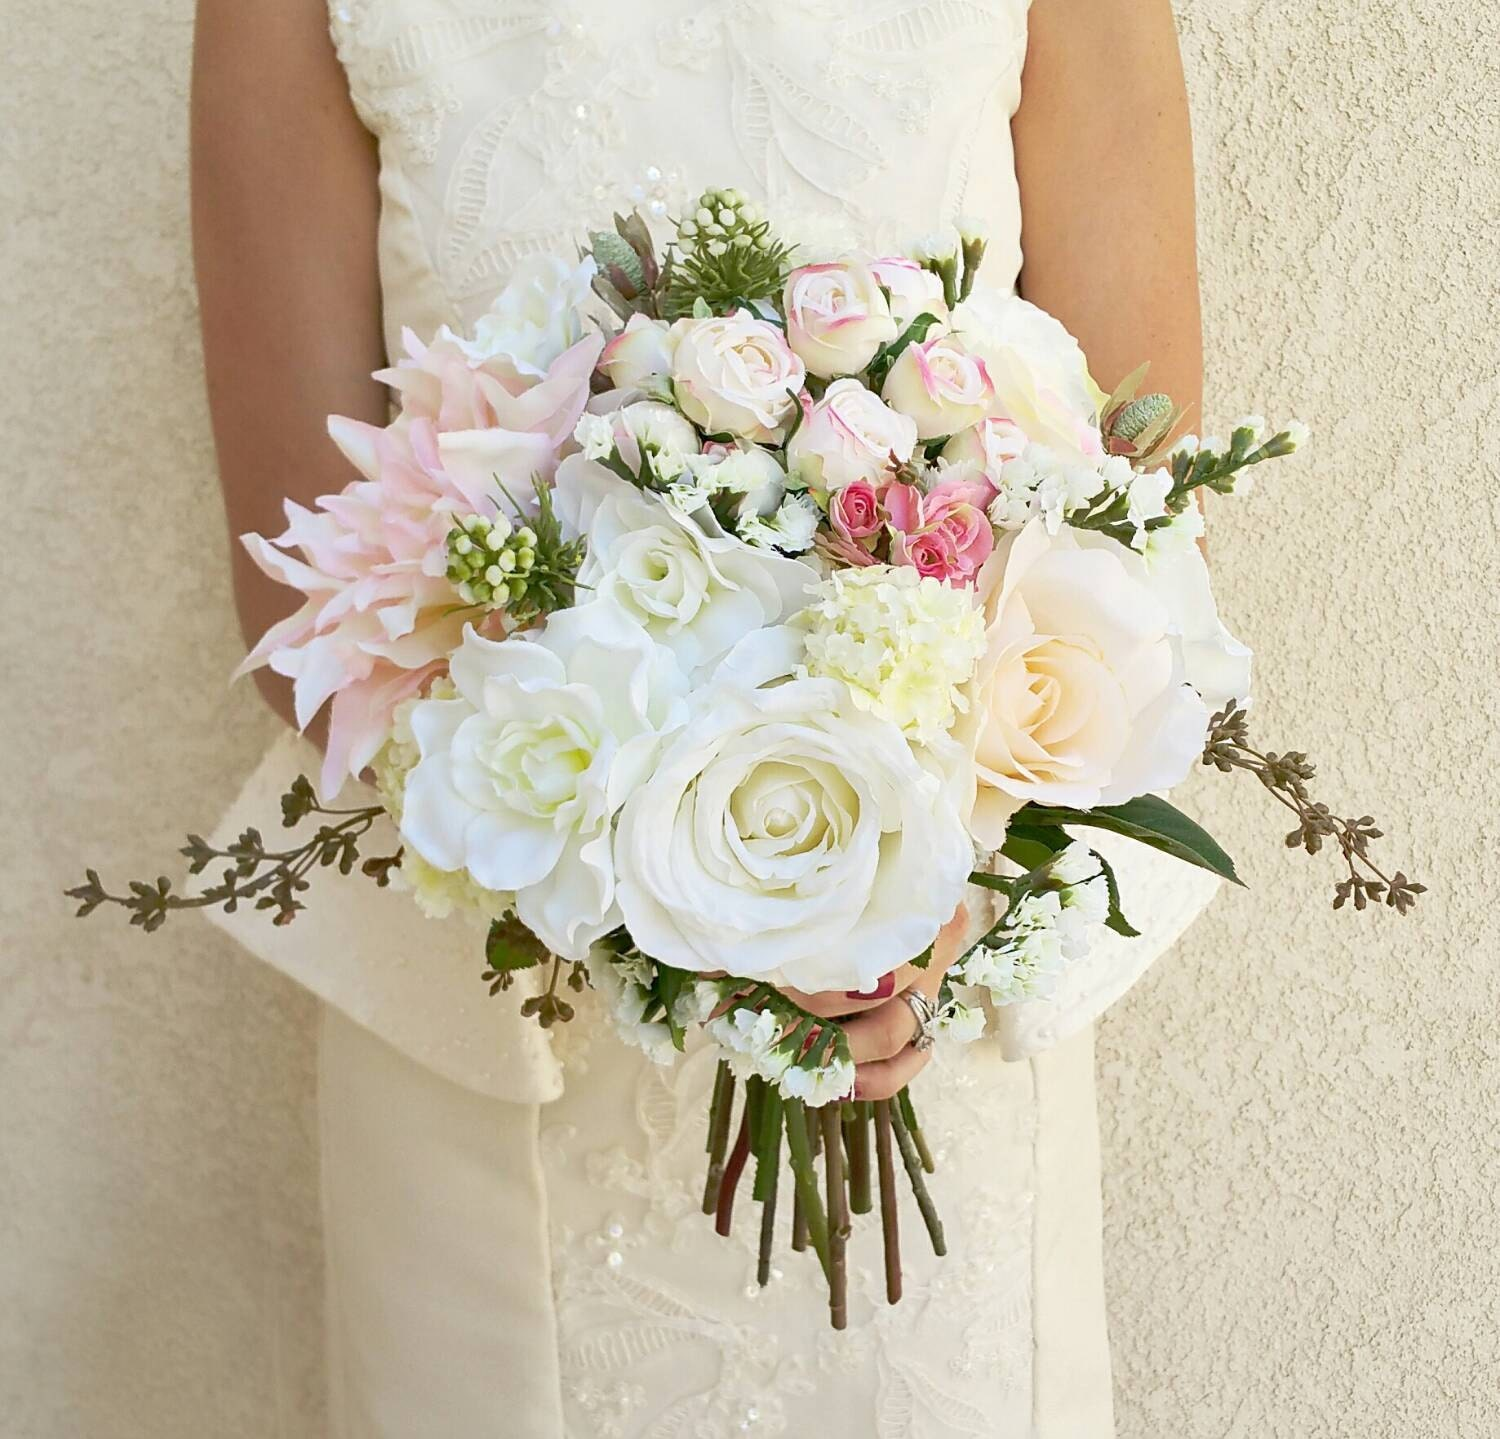 Wedding bouquet silk flower bouquet wedding flowers for Best flowers for wedding bouquet